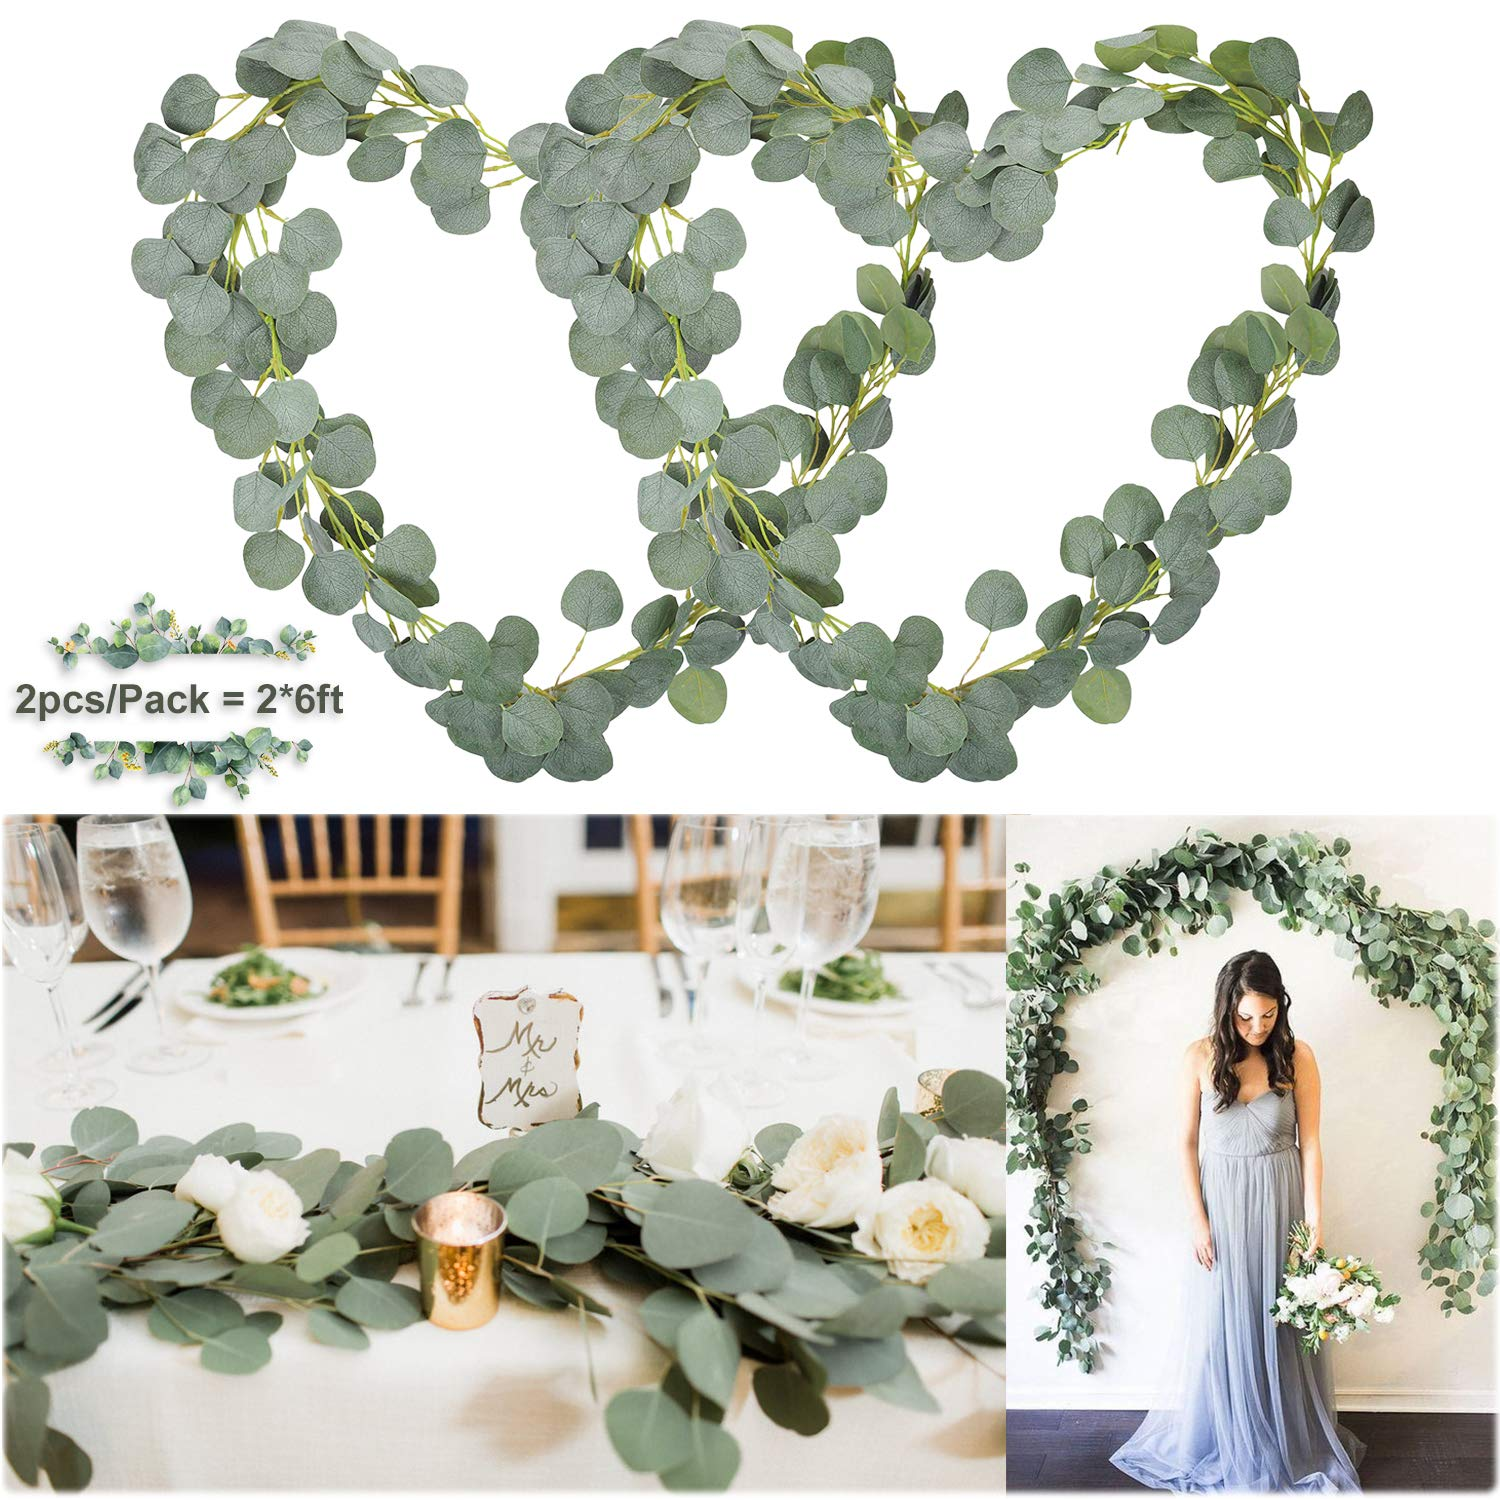 Soyee Artificial Eucalyptus Garland 12FT Wedding Arch Decorations Faux Eucalyptus Leaves Vines Handmade Greenery Garlands Backdrop Table Placement Decor